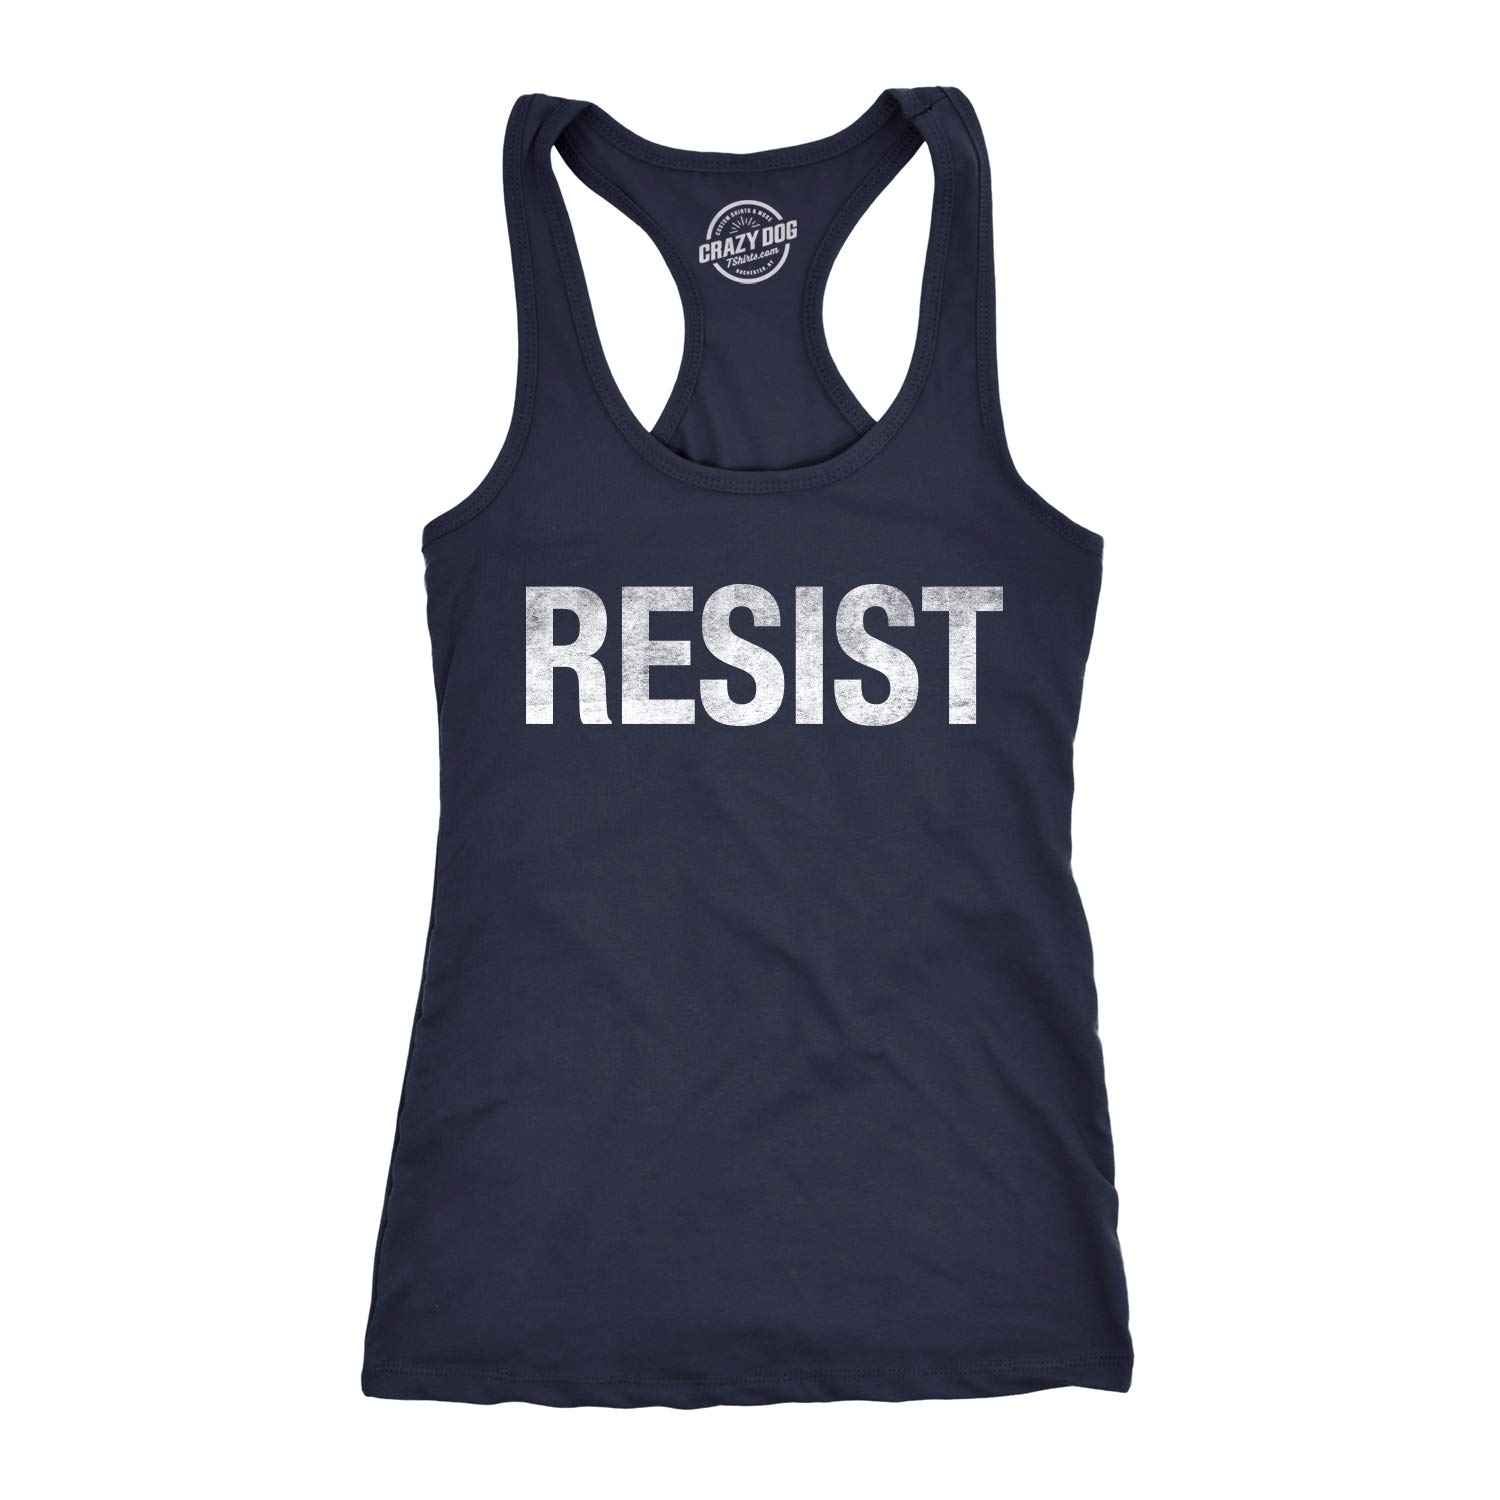 Womens Resist Tee United States of America Protest Rebel Political Fitness Tank Top Crazy Dog Tshirts Divertente Donna Canotta